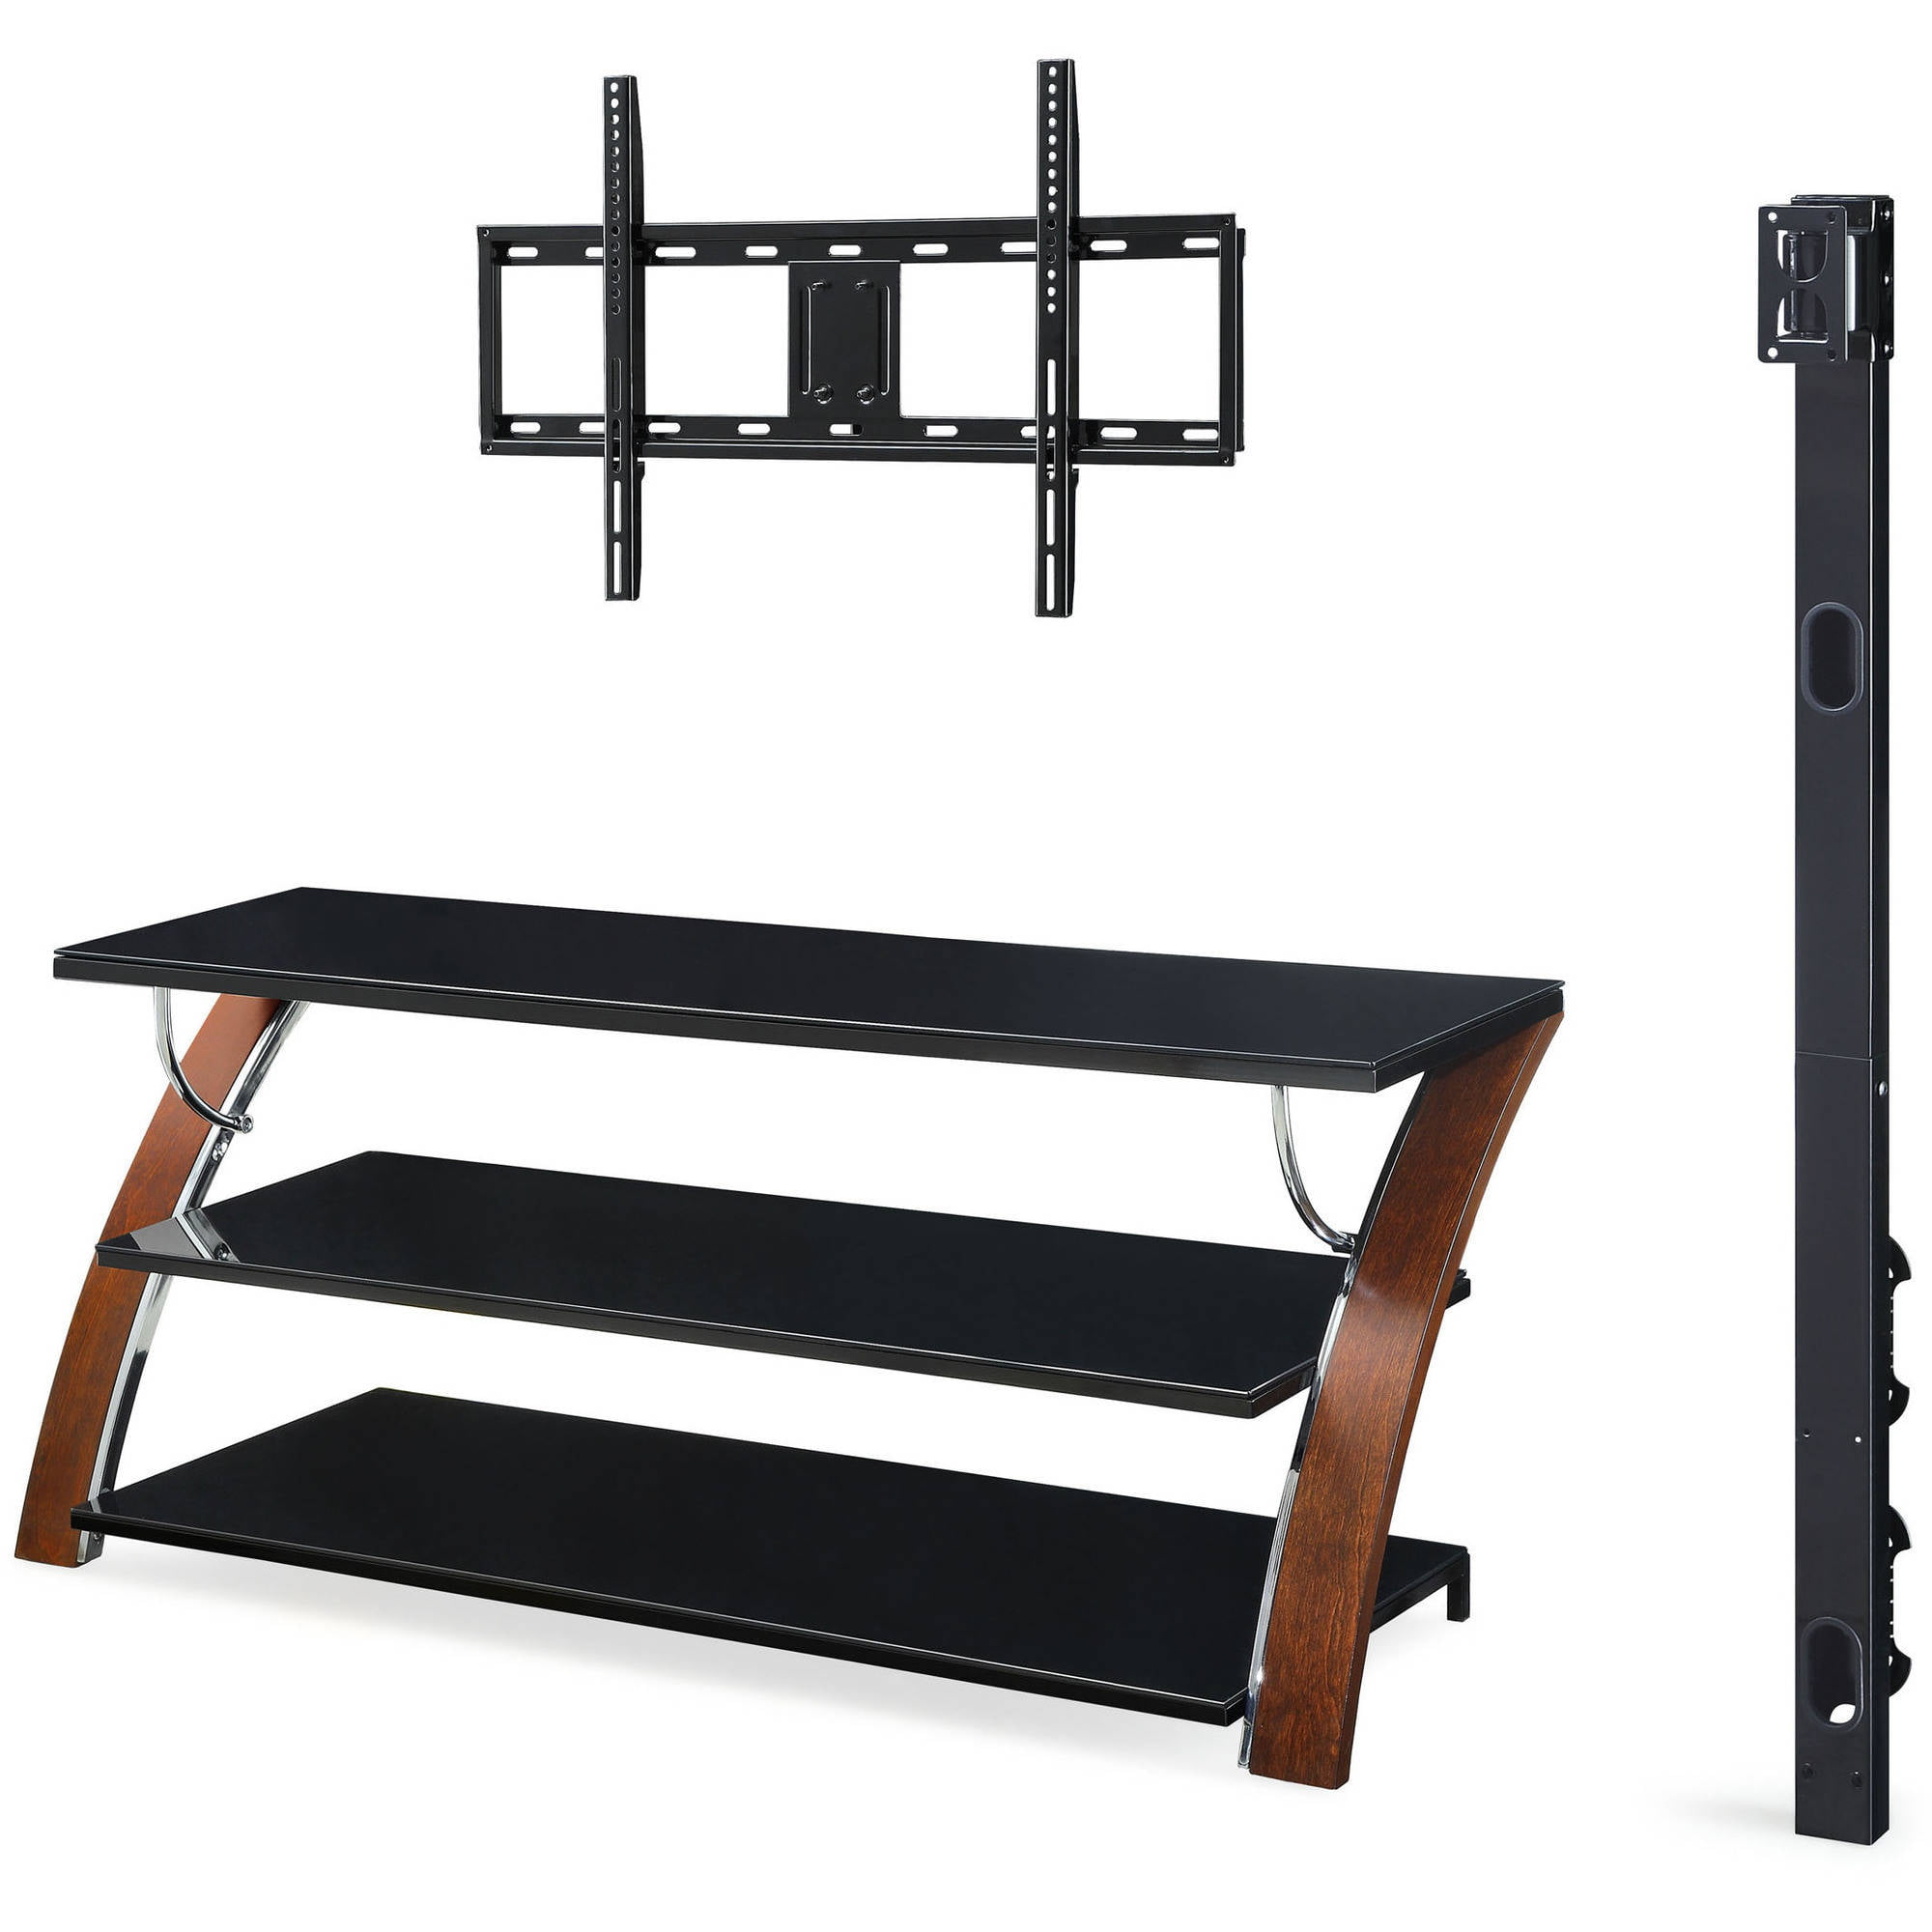 Whalen Payton Brown Cherry 3 In 1 Flat Panel Tv Stand For Tvs Up To